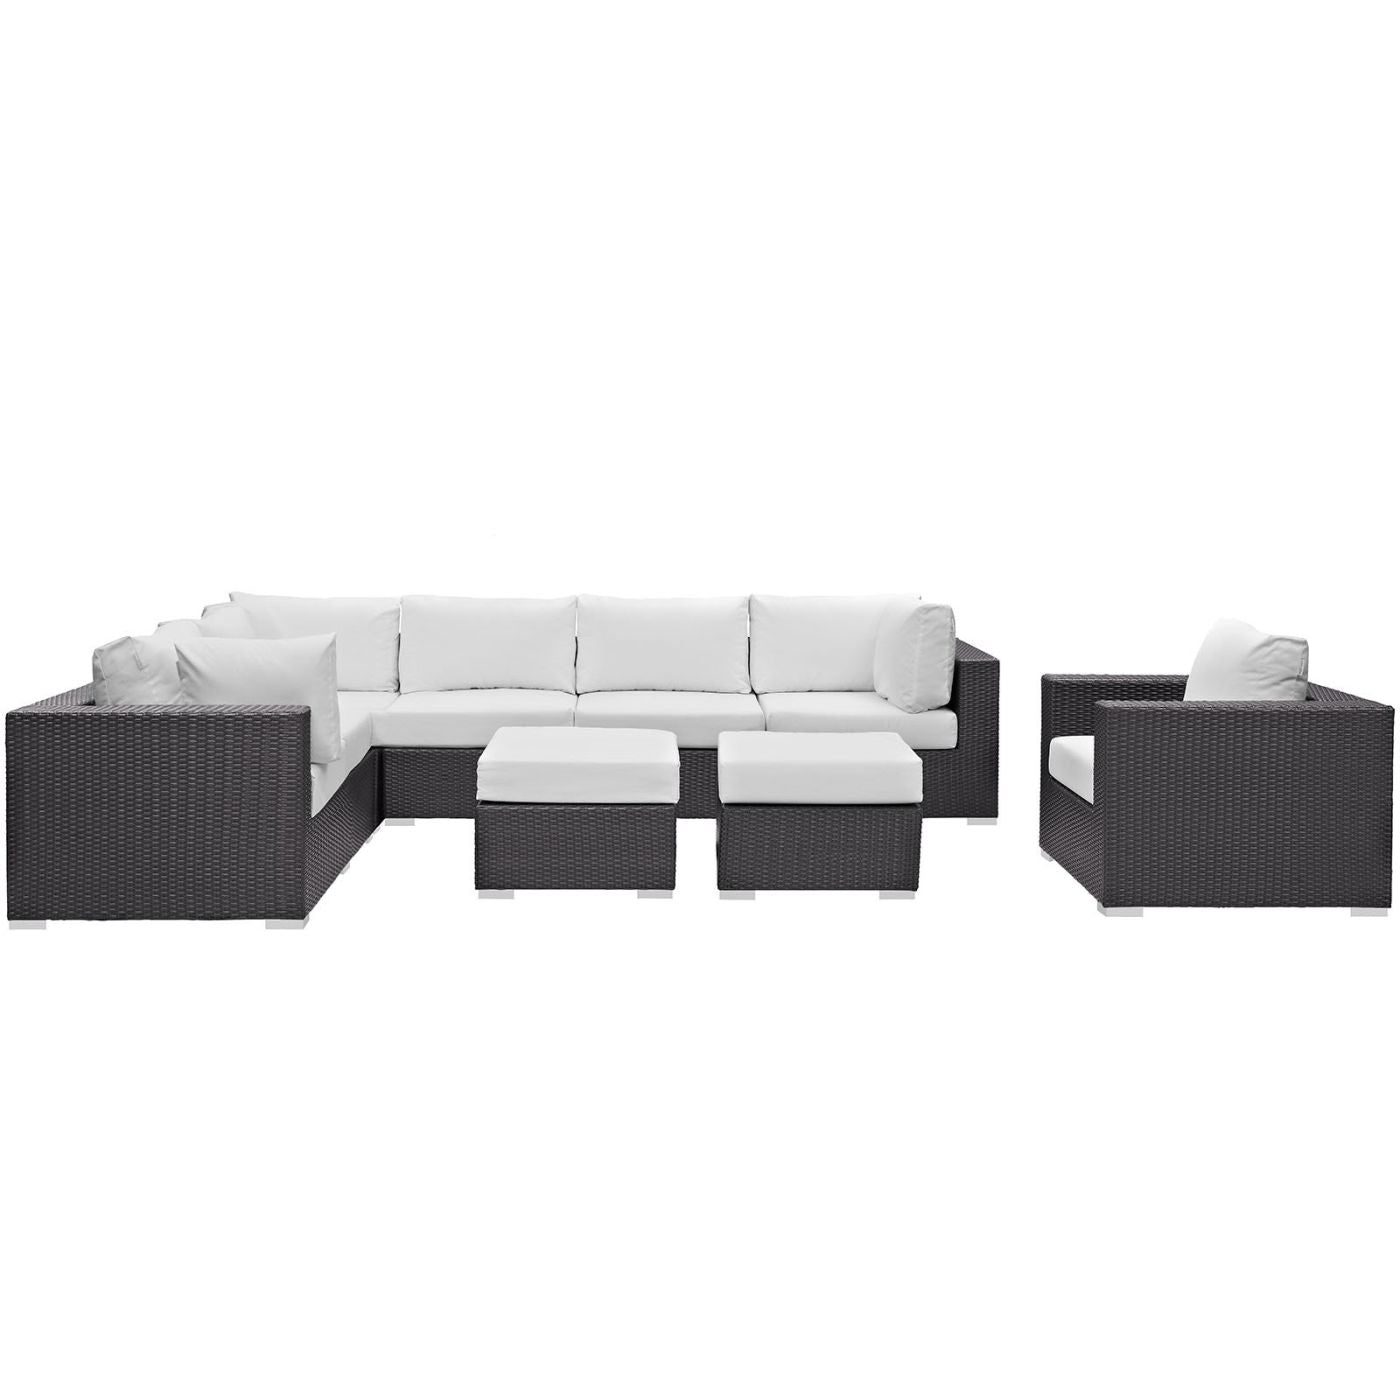 sofa rattan wicker group on patio couch alibaba sectional com outdoor set aliexpress item furniture pe deck